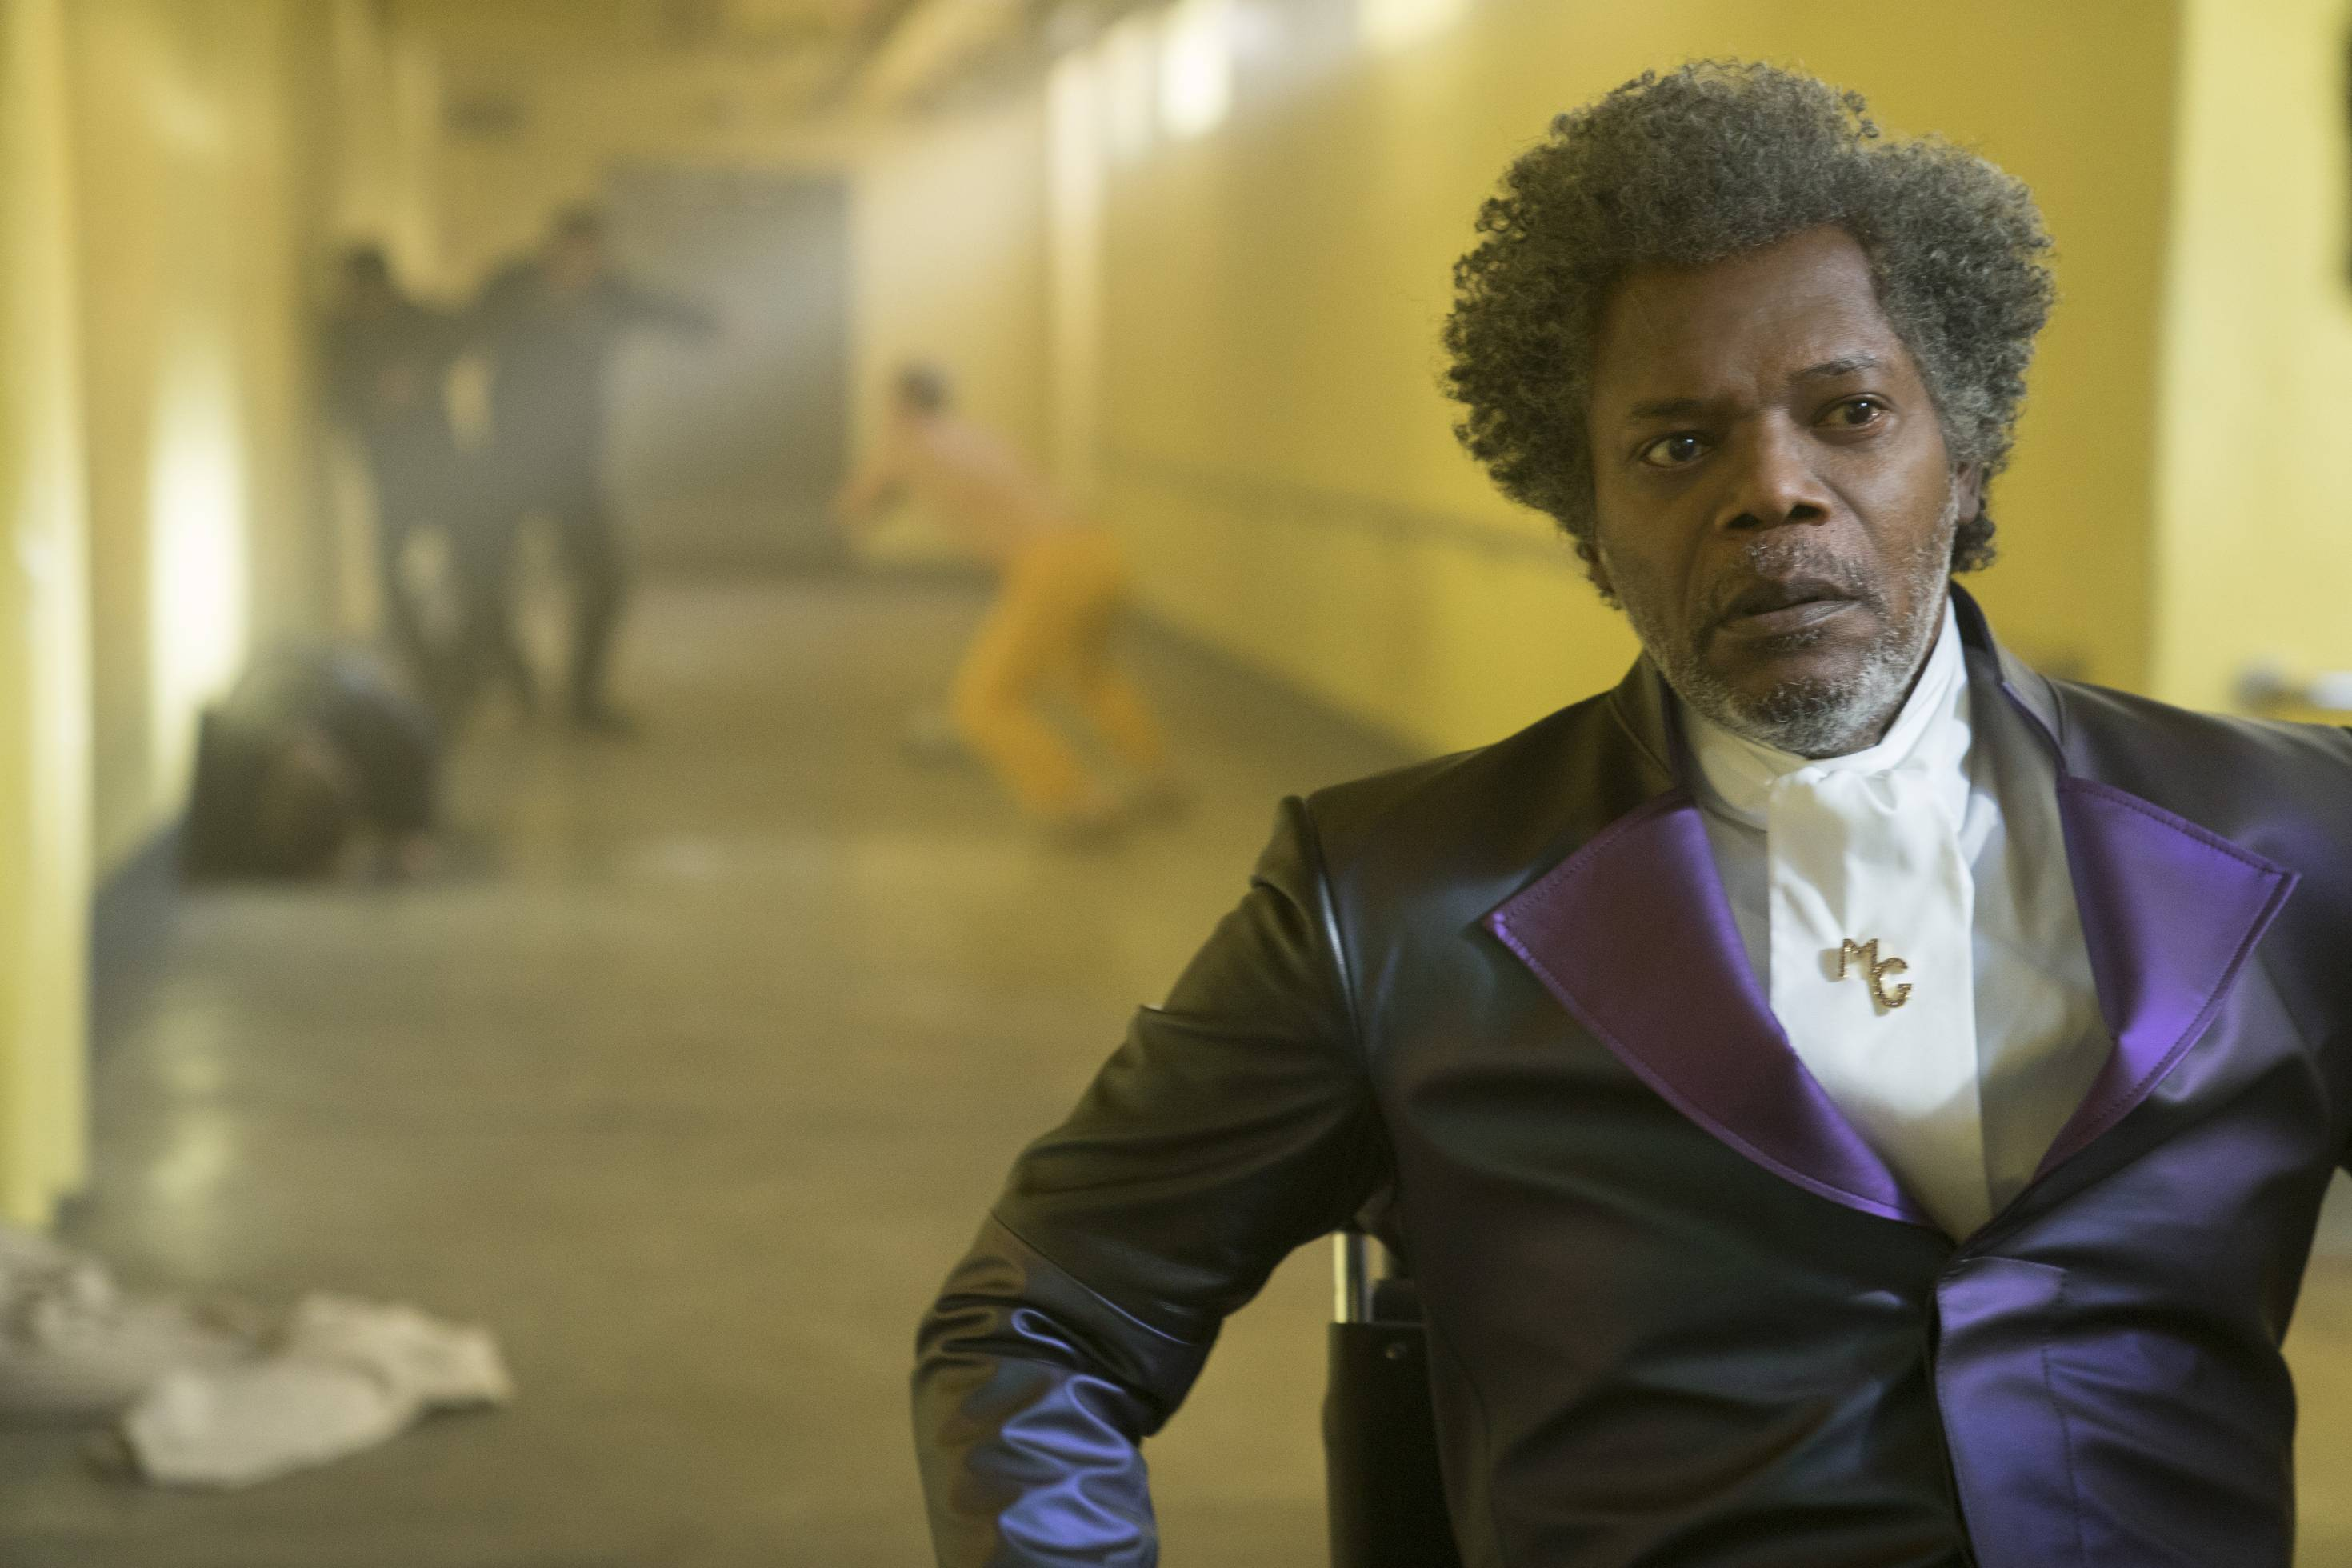 M. Night Shyamalan's 'Glass' fails to live up to provocative premise